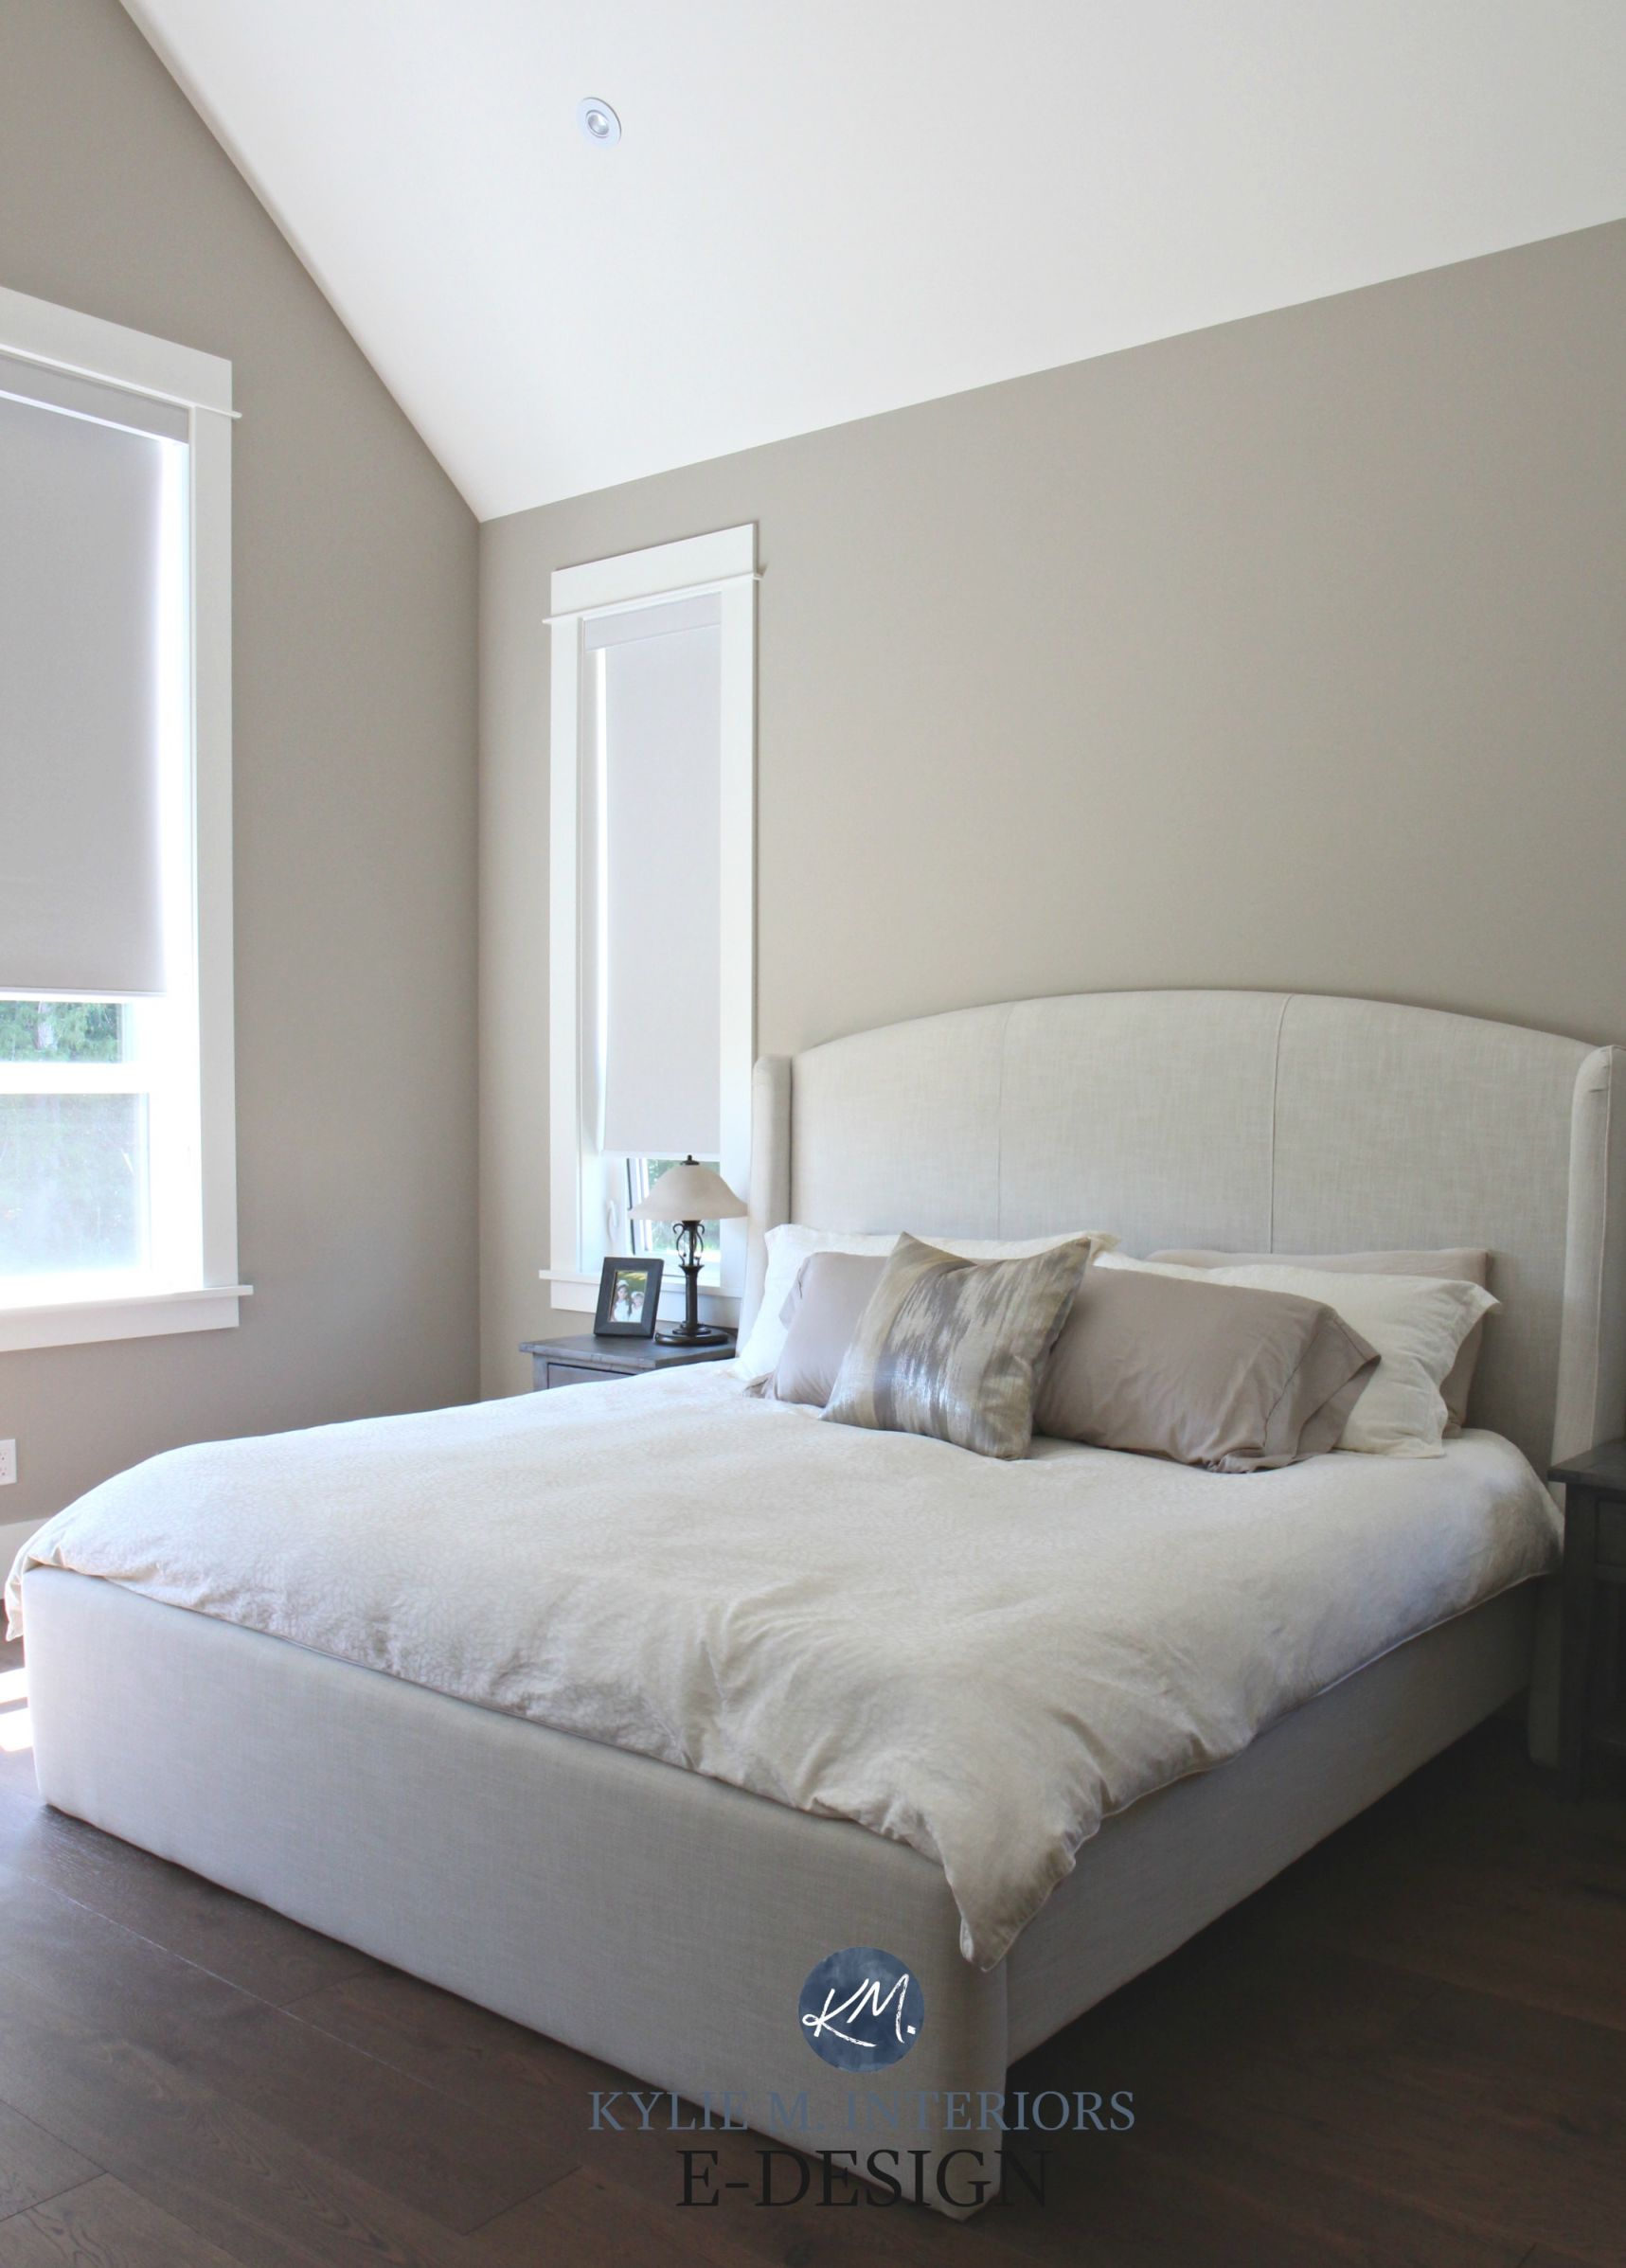 Sherwin Williams Balanced Beige, Mushroom Paint Color, Best intended for Beautiful Taupe Bedroom Decorating Ideas